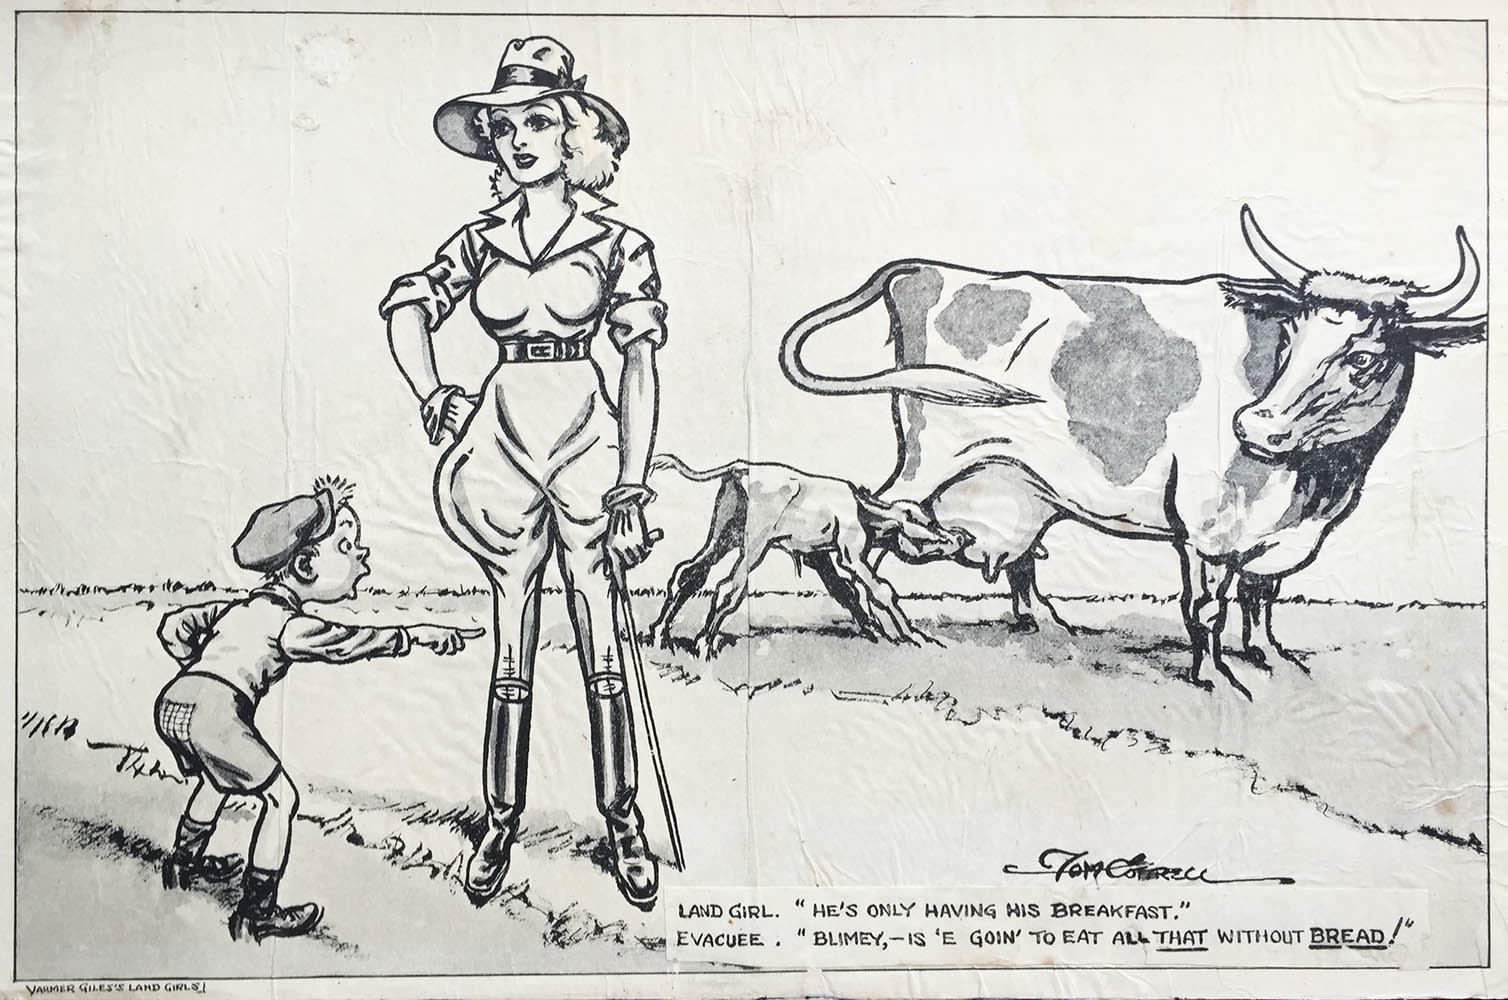 Tom Cottrell Women's Land Army Cartoon - April Fools Day Source: Catherine Procter's WLA Collection